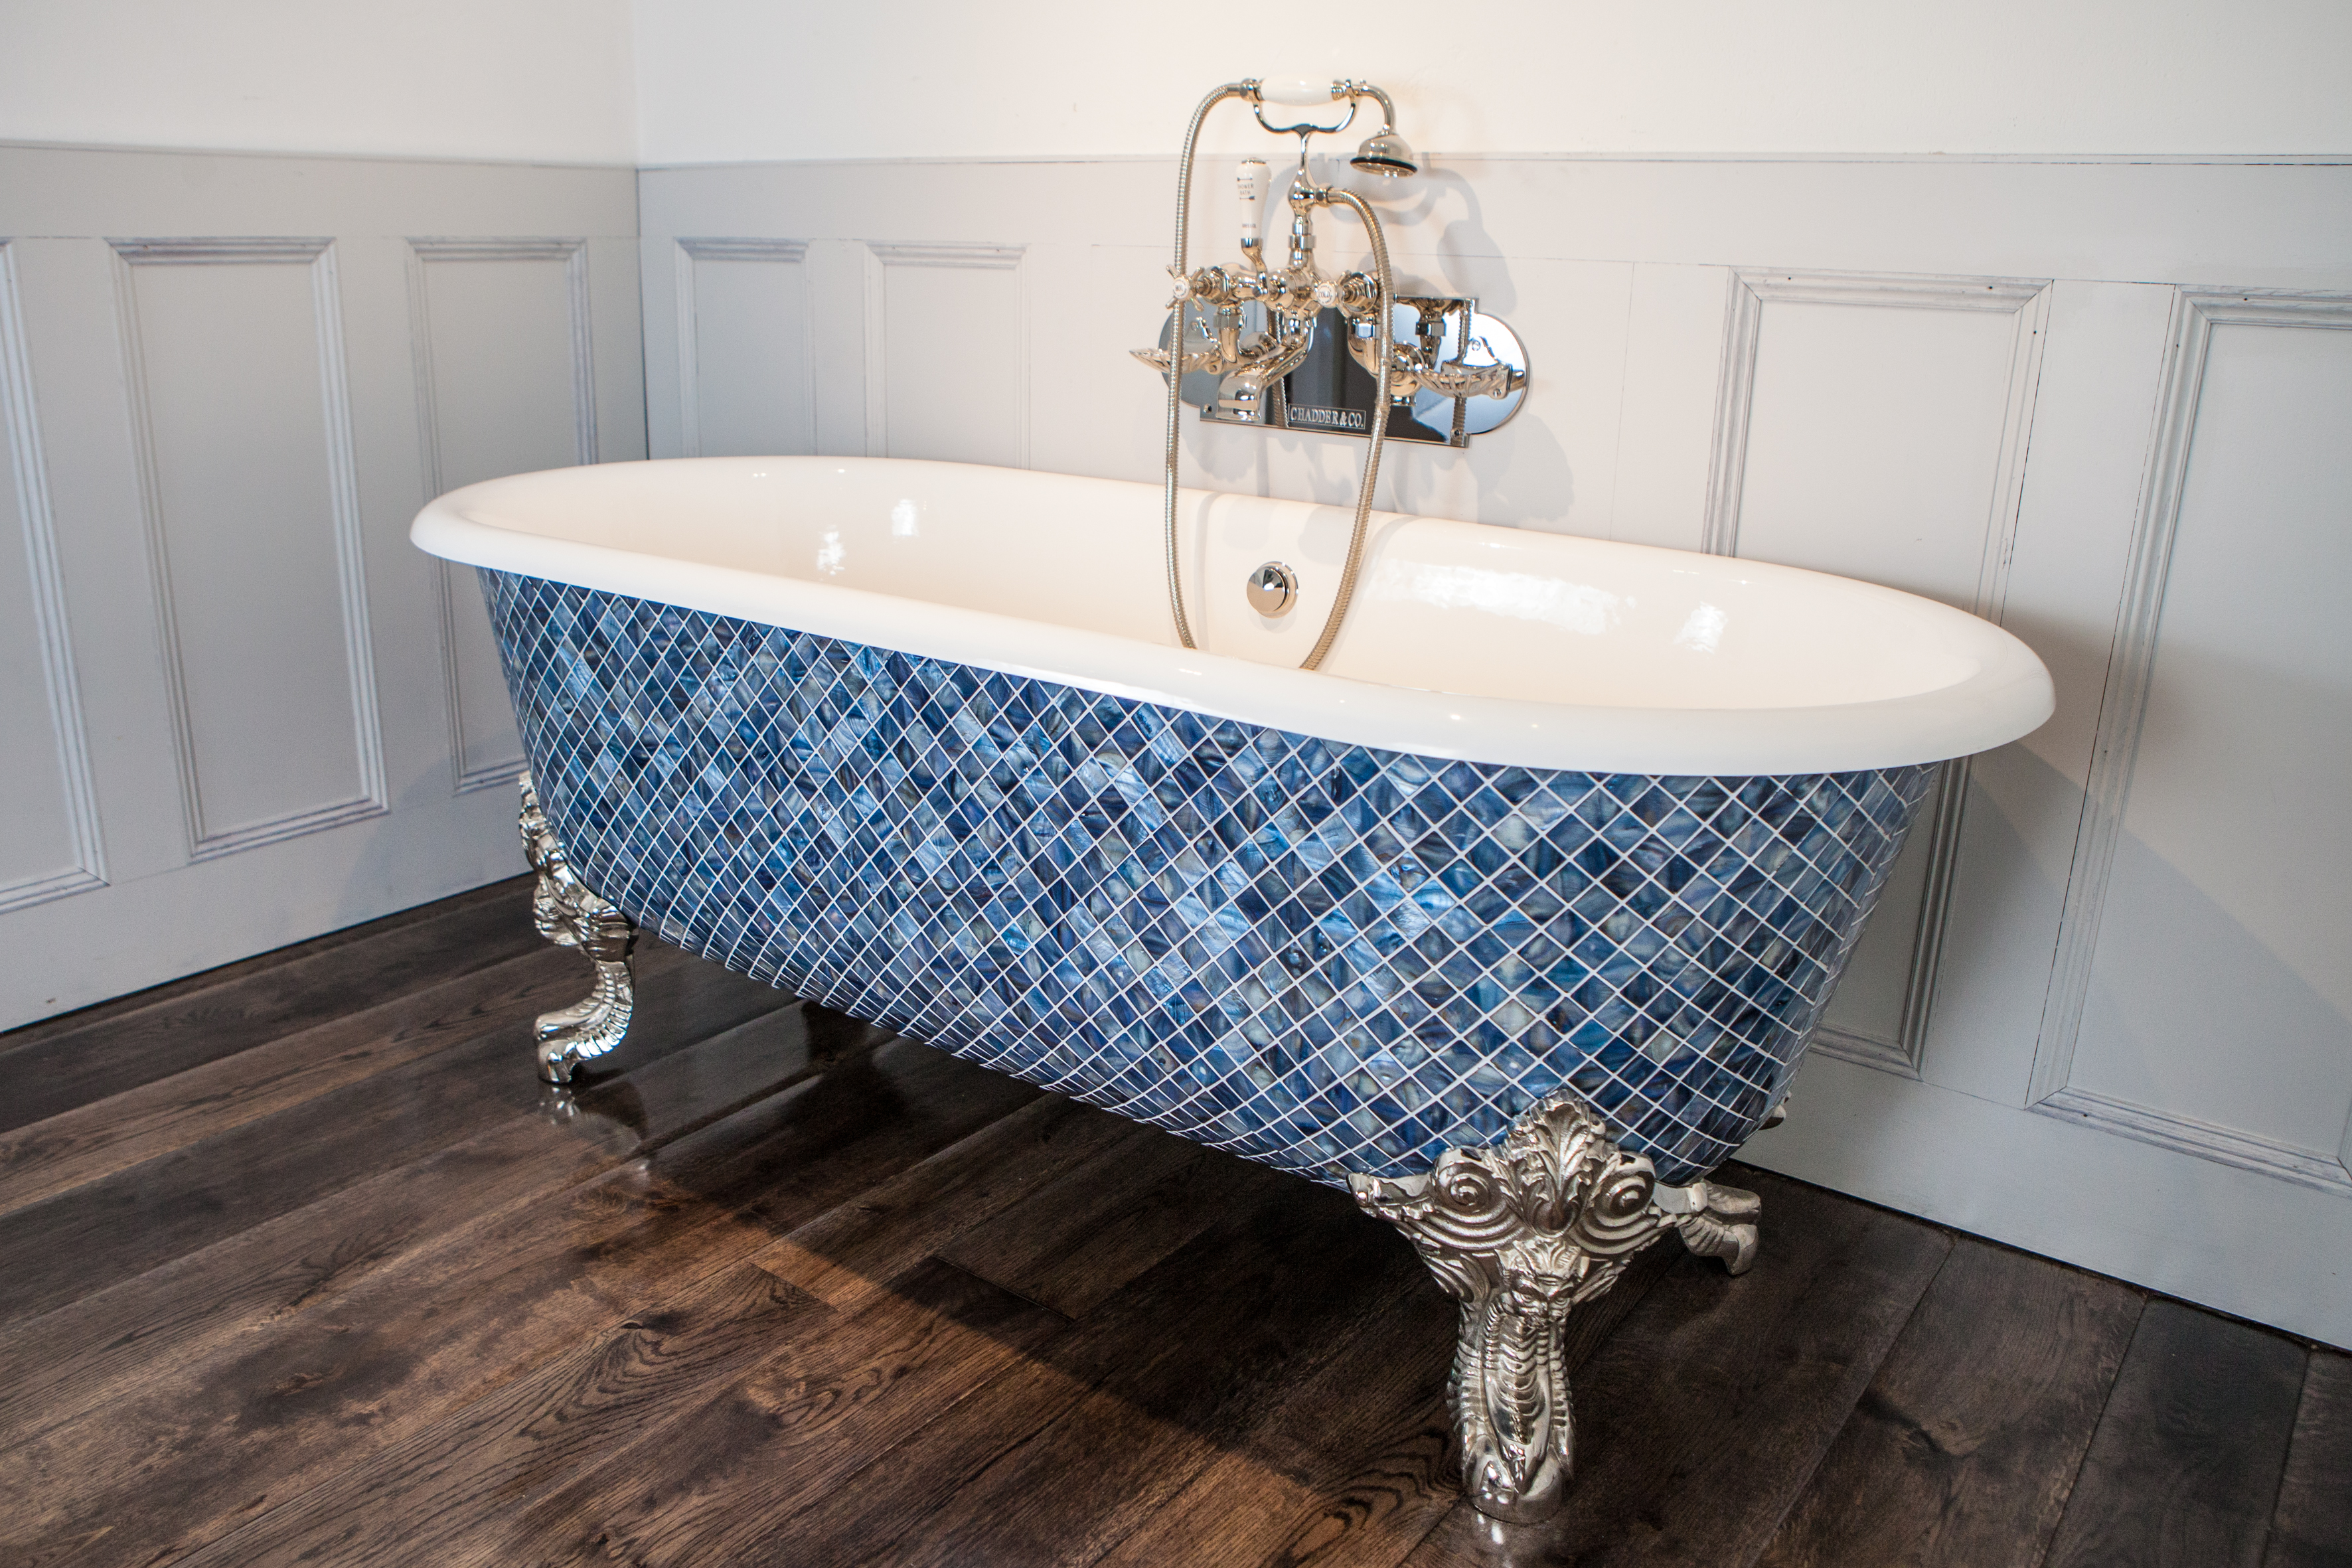 Chadder Mosaic Baths | Chadder & Co.